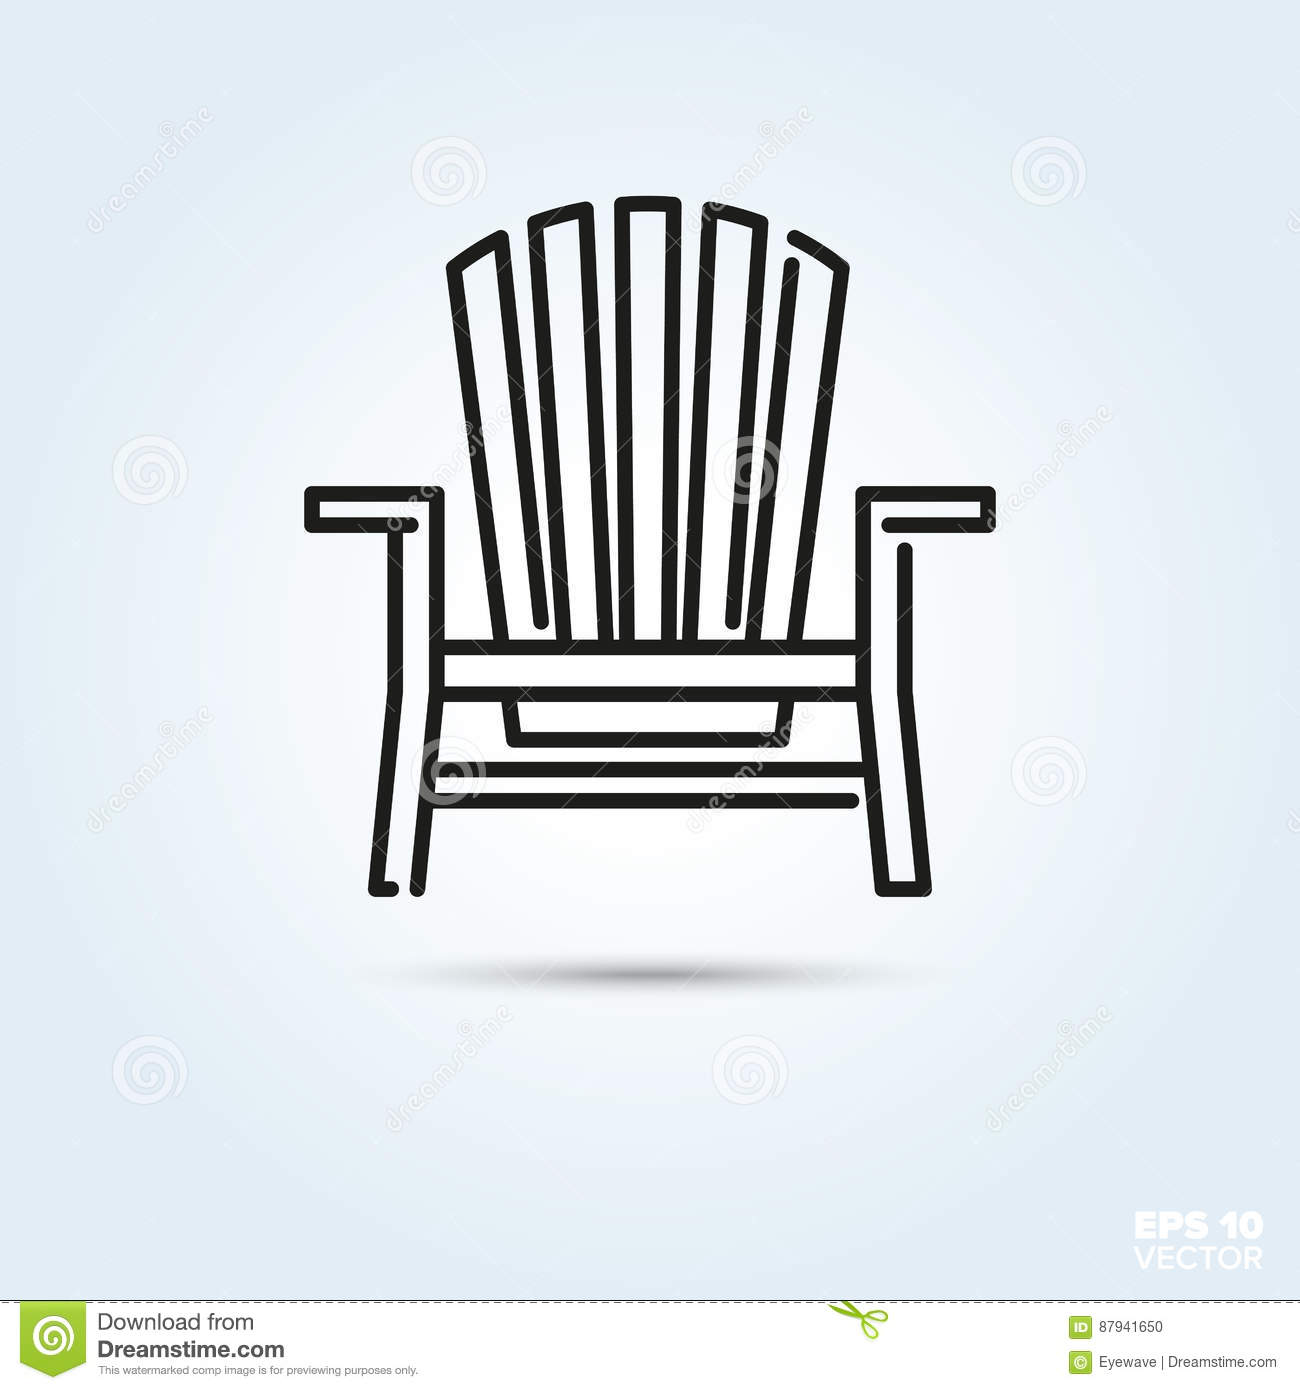 Adirondack Deck Chair Icon Stock Vector Illustration Of Wooden